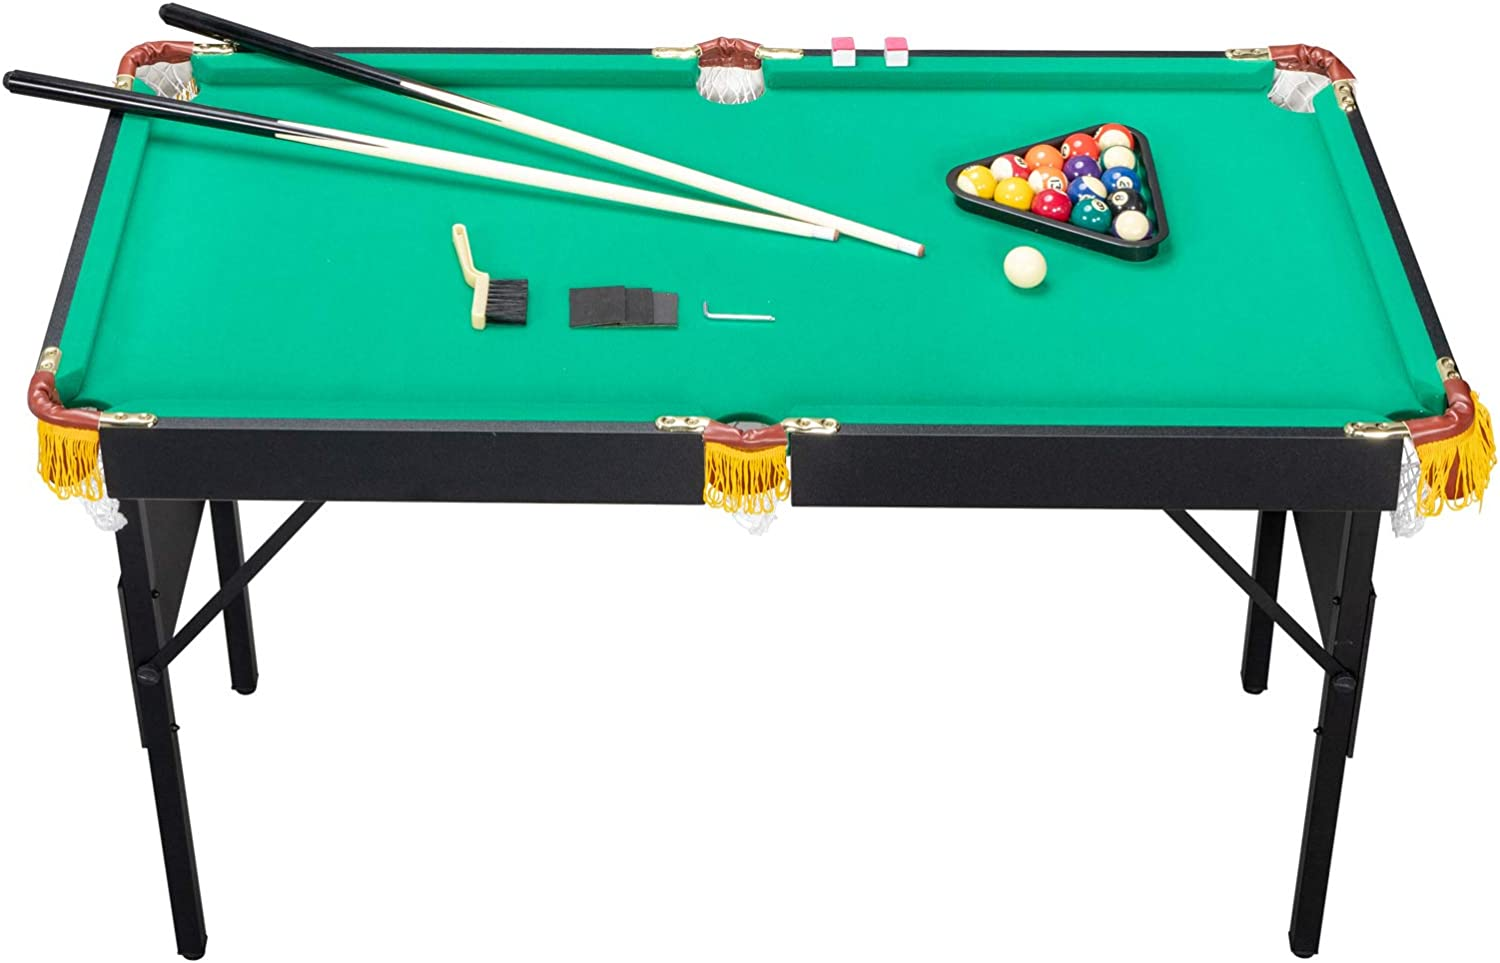 Billiard Table Foldable Indoor and Outdoor Shipping included Female Translated Adult Male